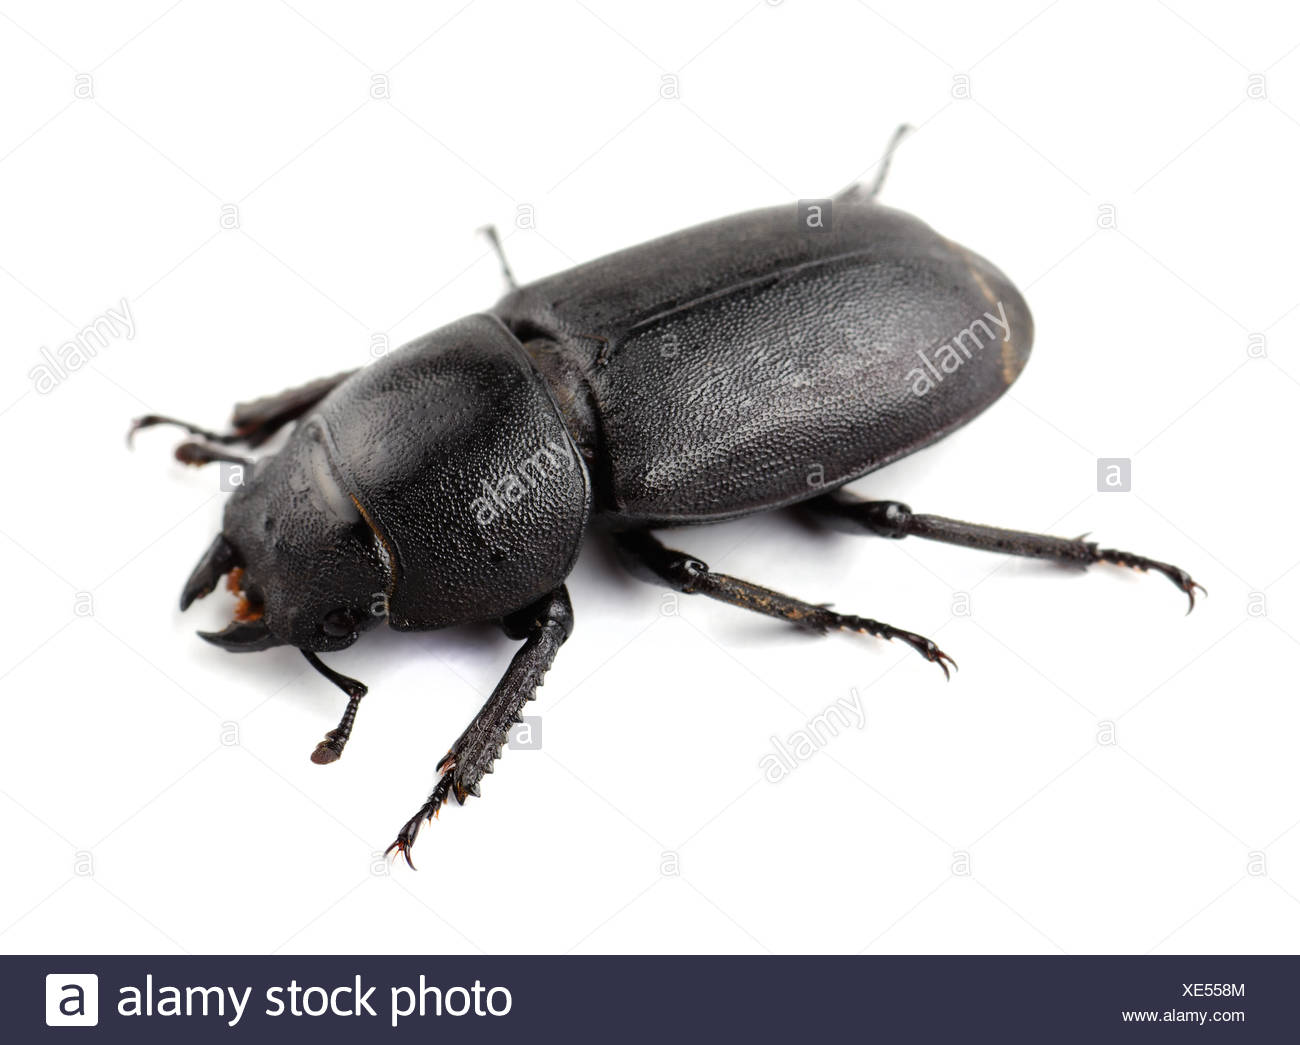 Stag beetle - Stock Image